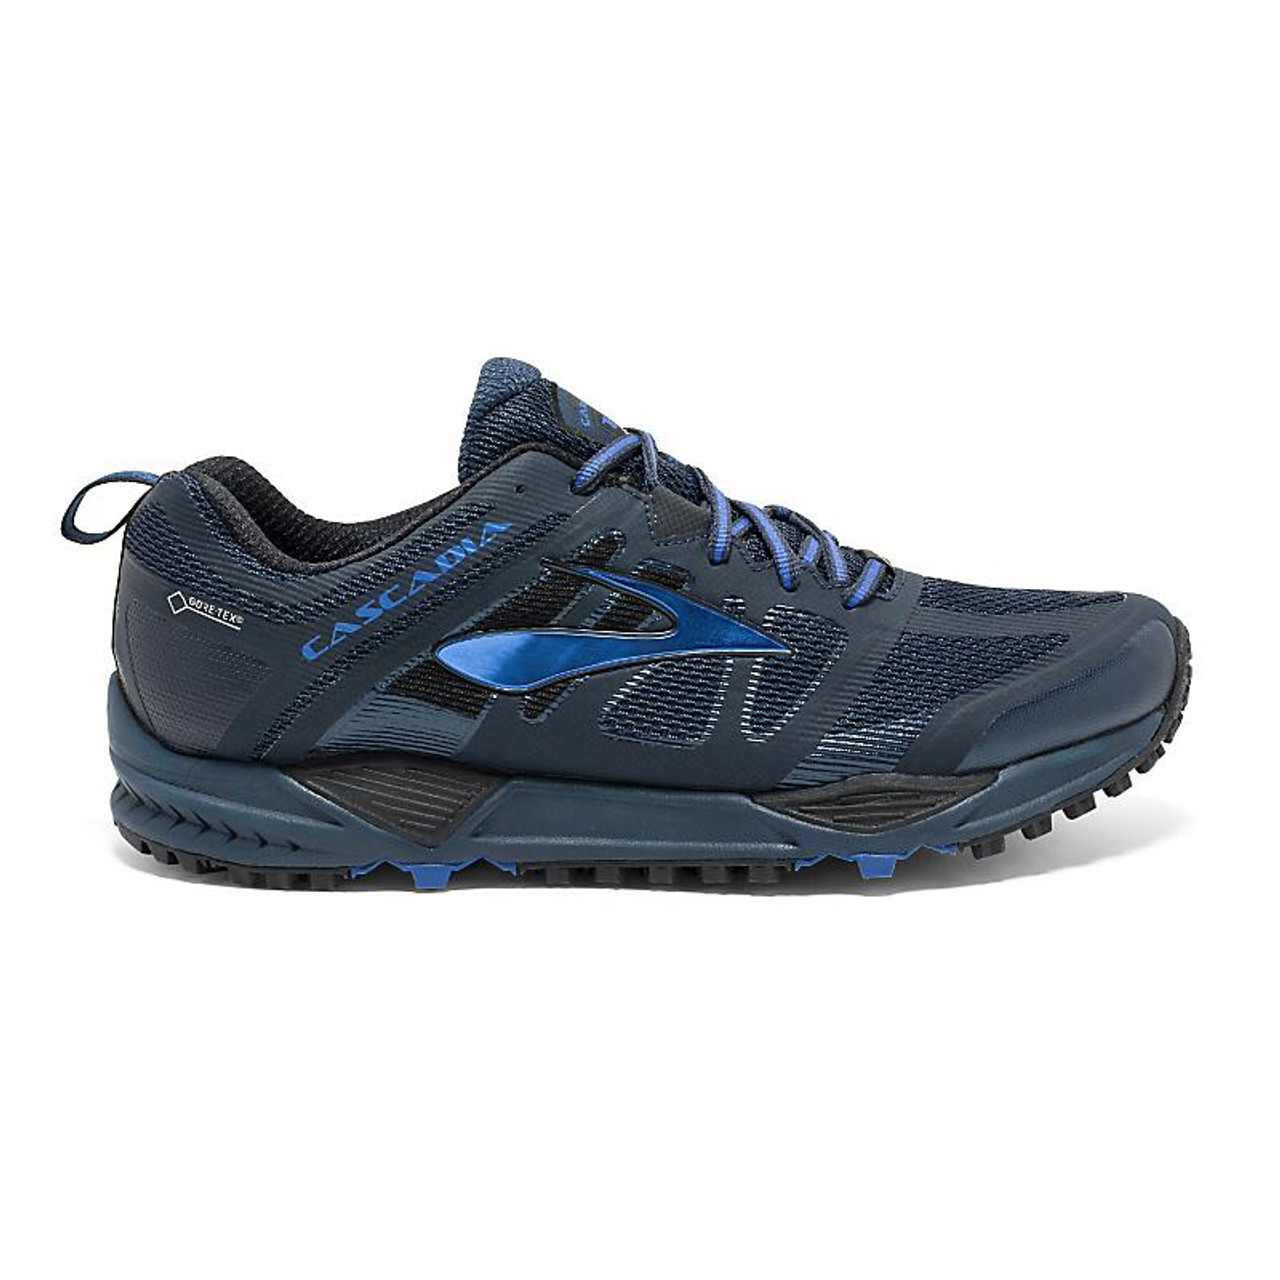 848d63b7344 Men s Brooks Cascadia 11 GTX Trail Running Shoe